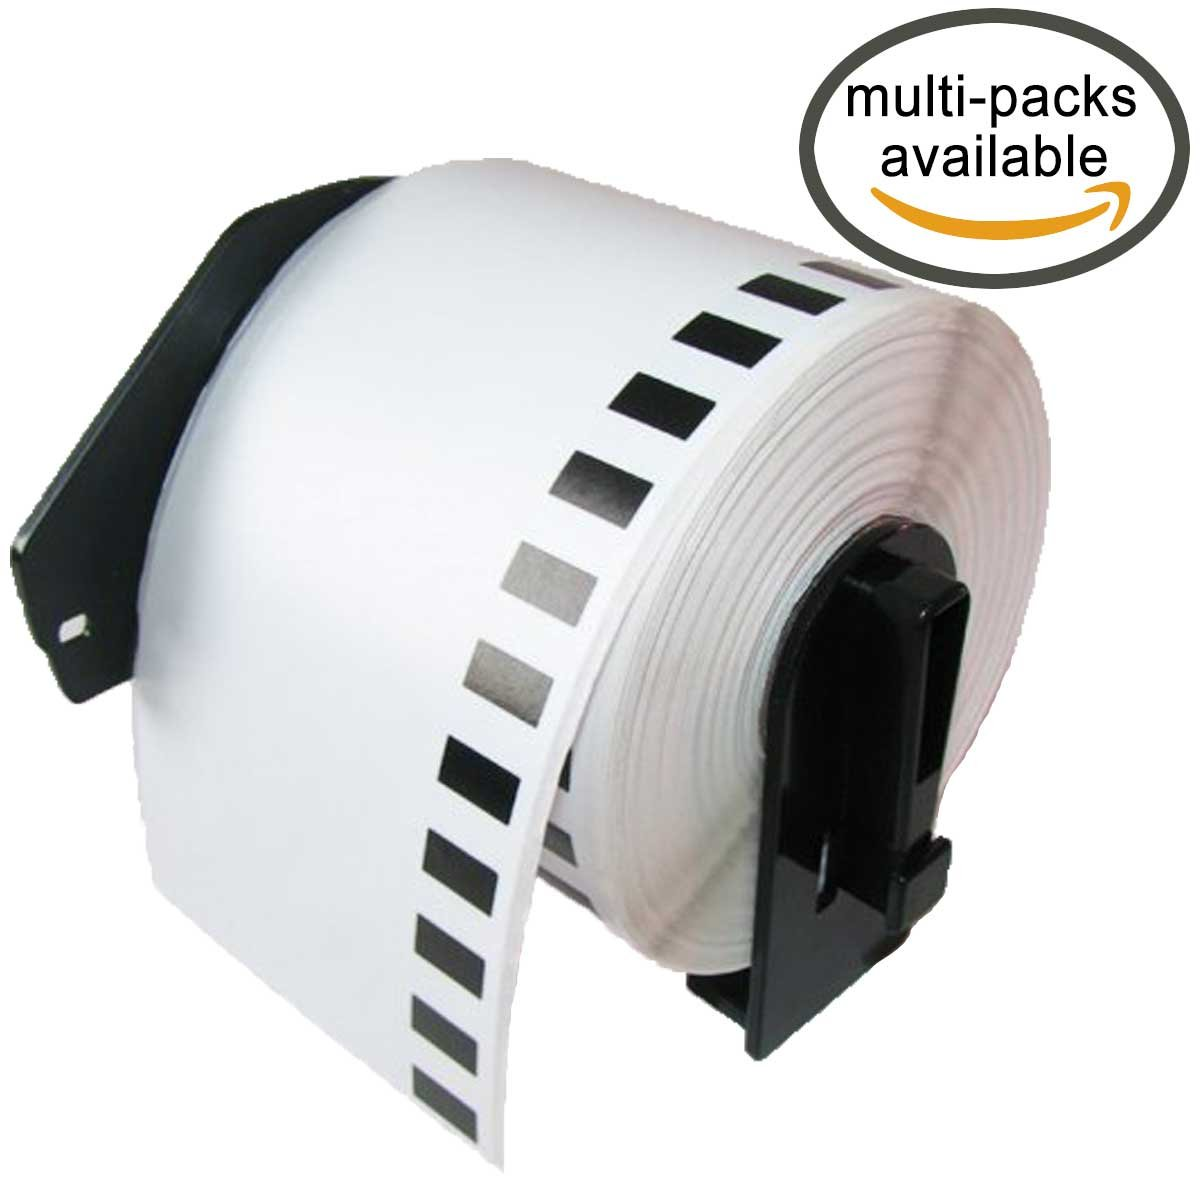 LiteTite DK-2205 (8 Rolls) Continuous Length Paper Tape Labels, Compatible with Brother P-Touch QL-Series, 2.4 (2-3/7) Inches (62mm) by 100 ft, includes (1) Snap-On-Frame (LT2205)